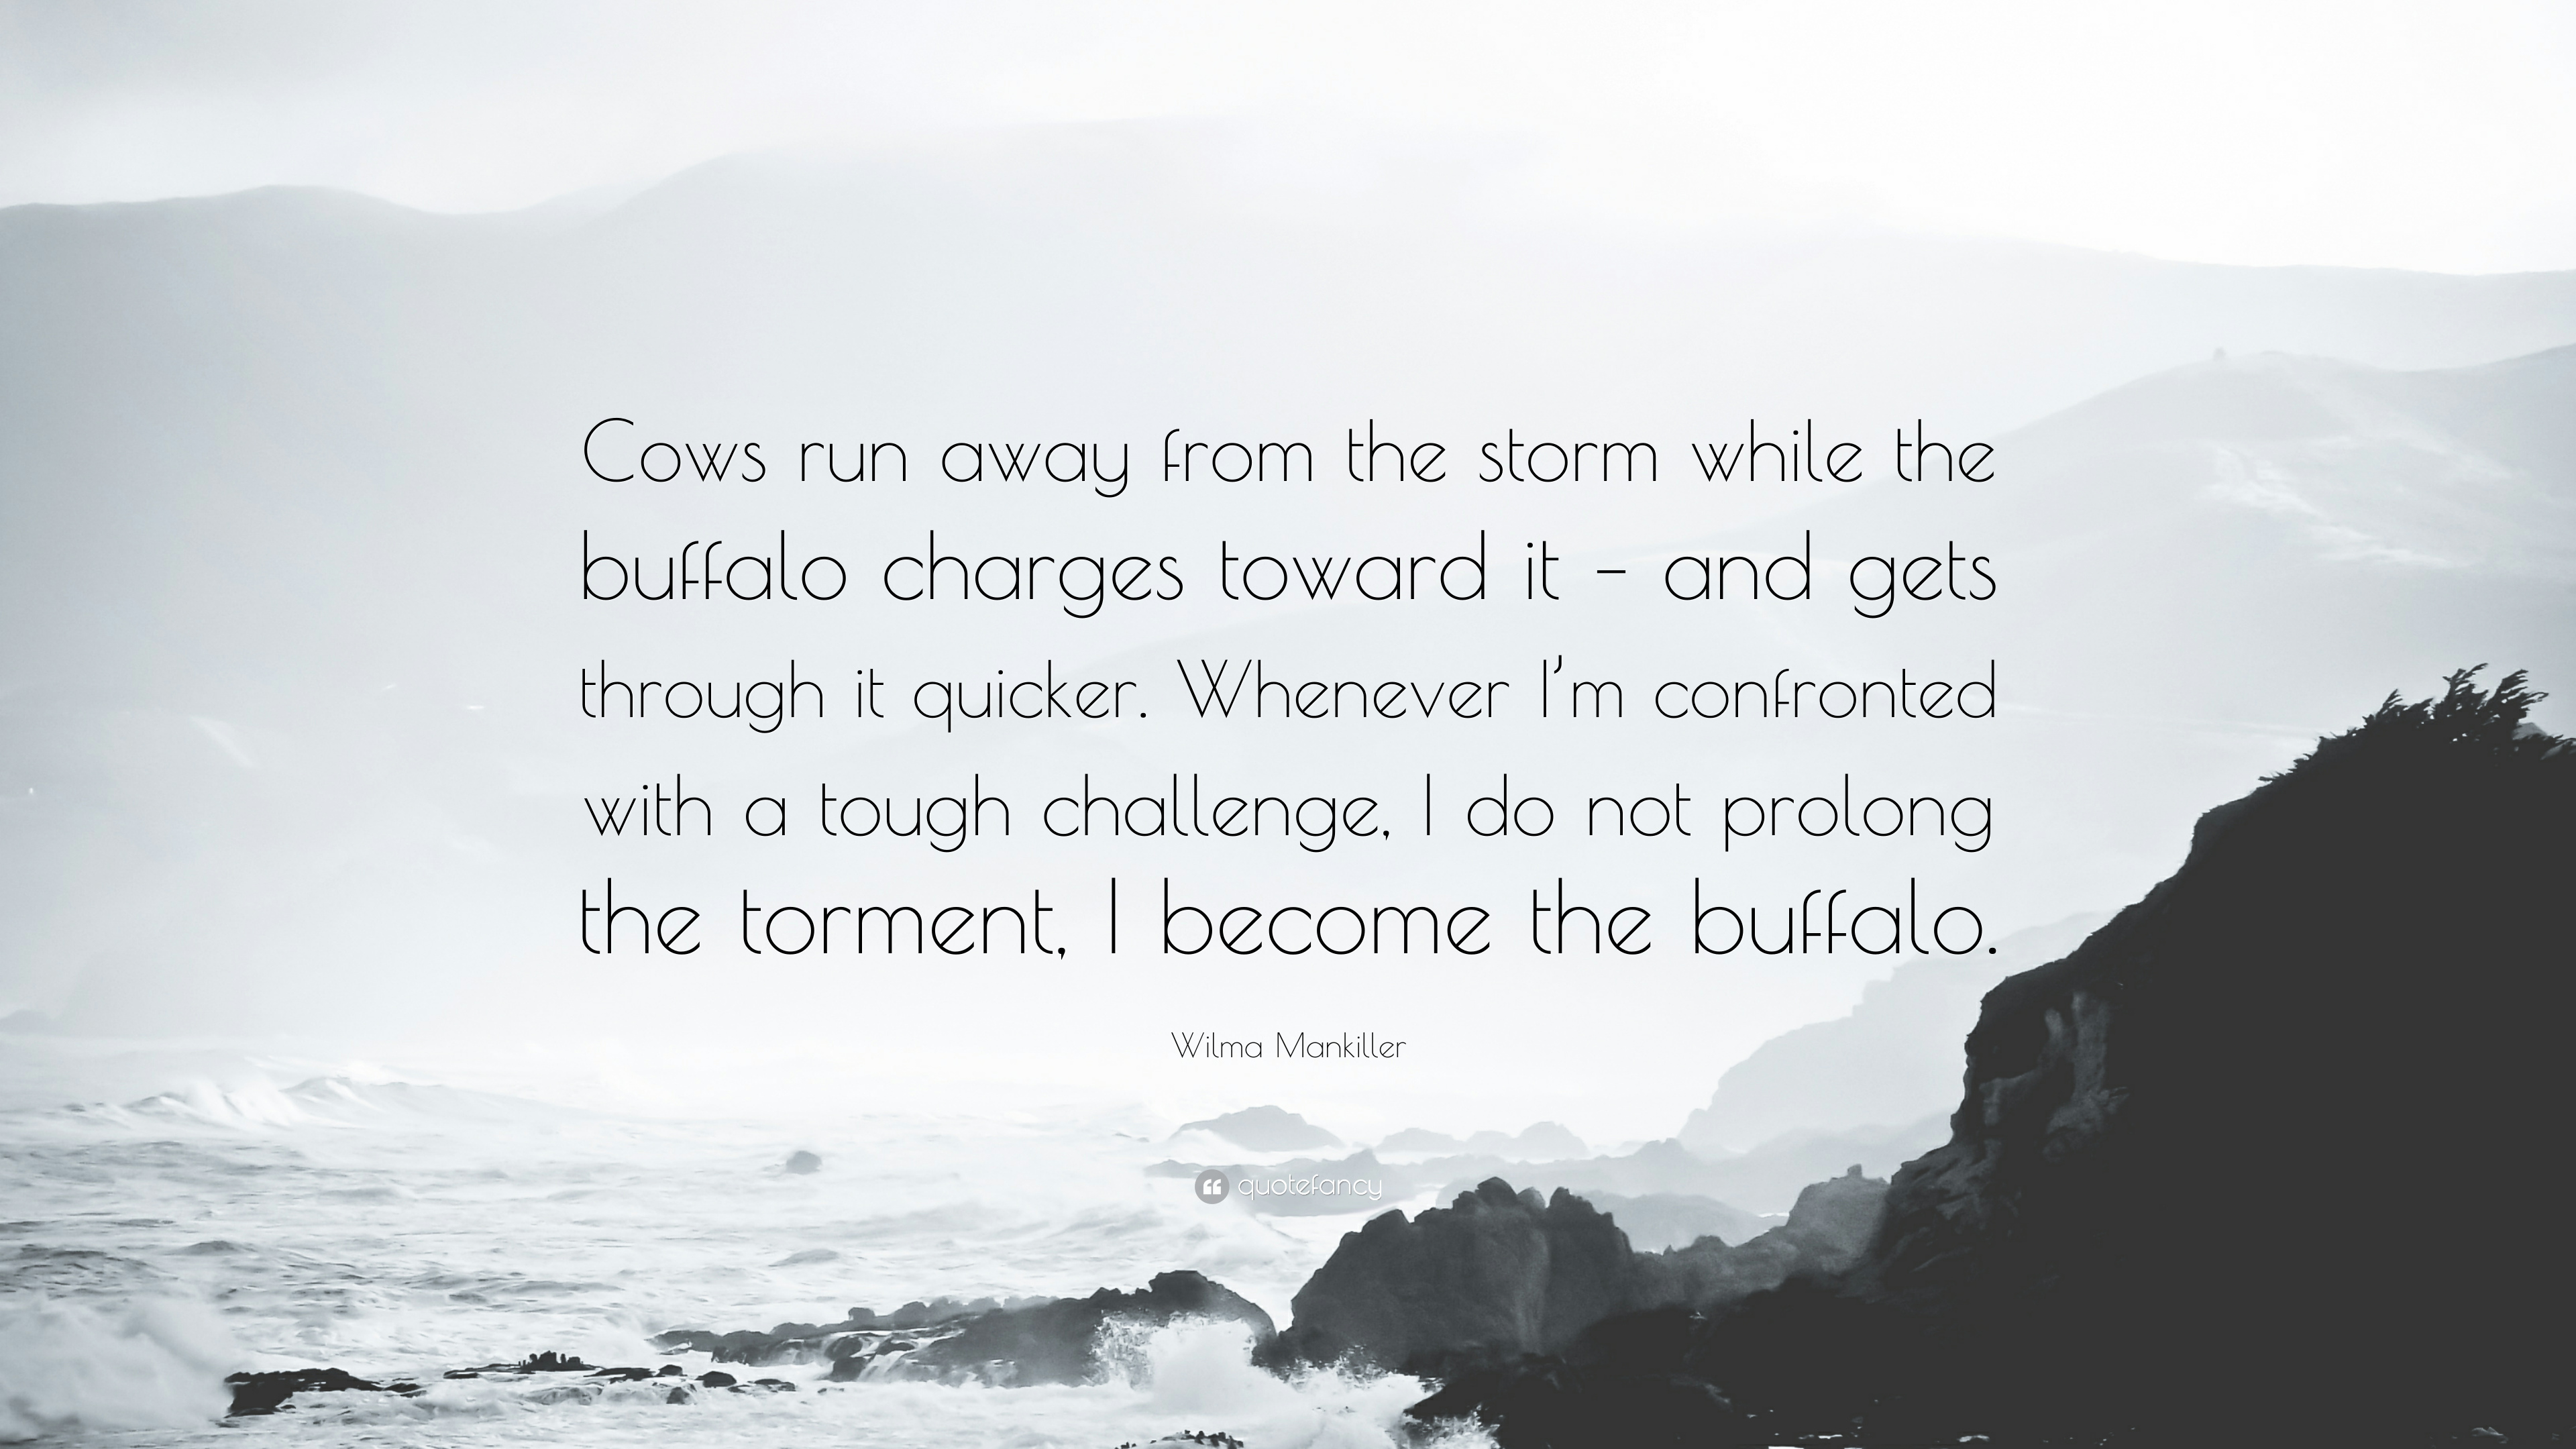 wilma mankiller quote cows run away from the storm while the